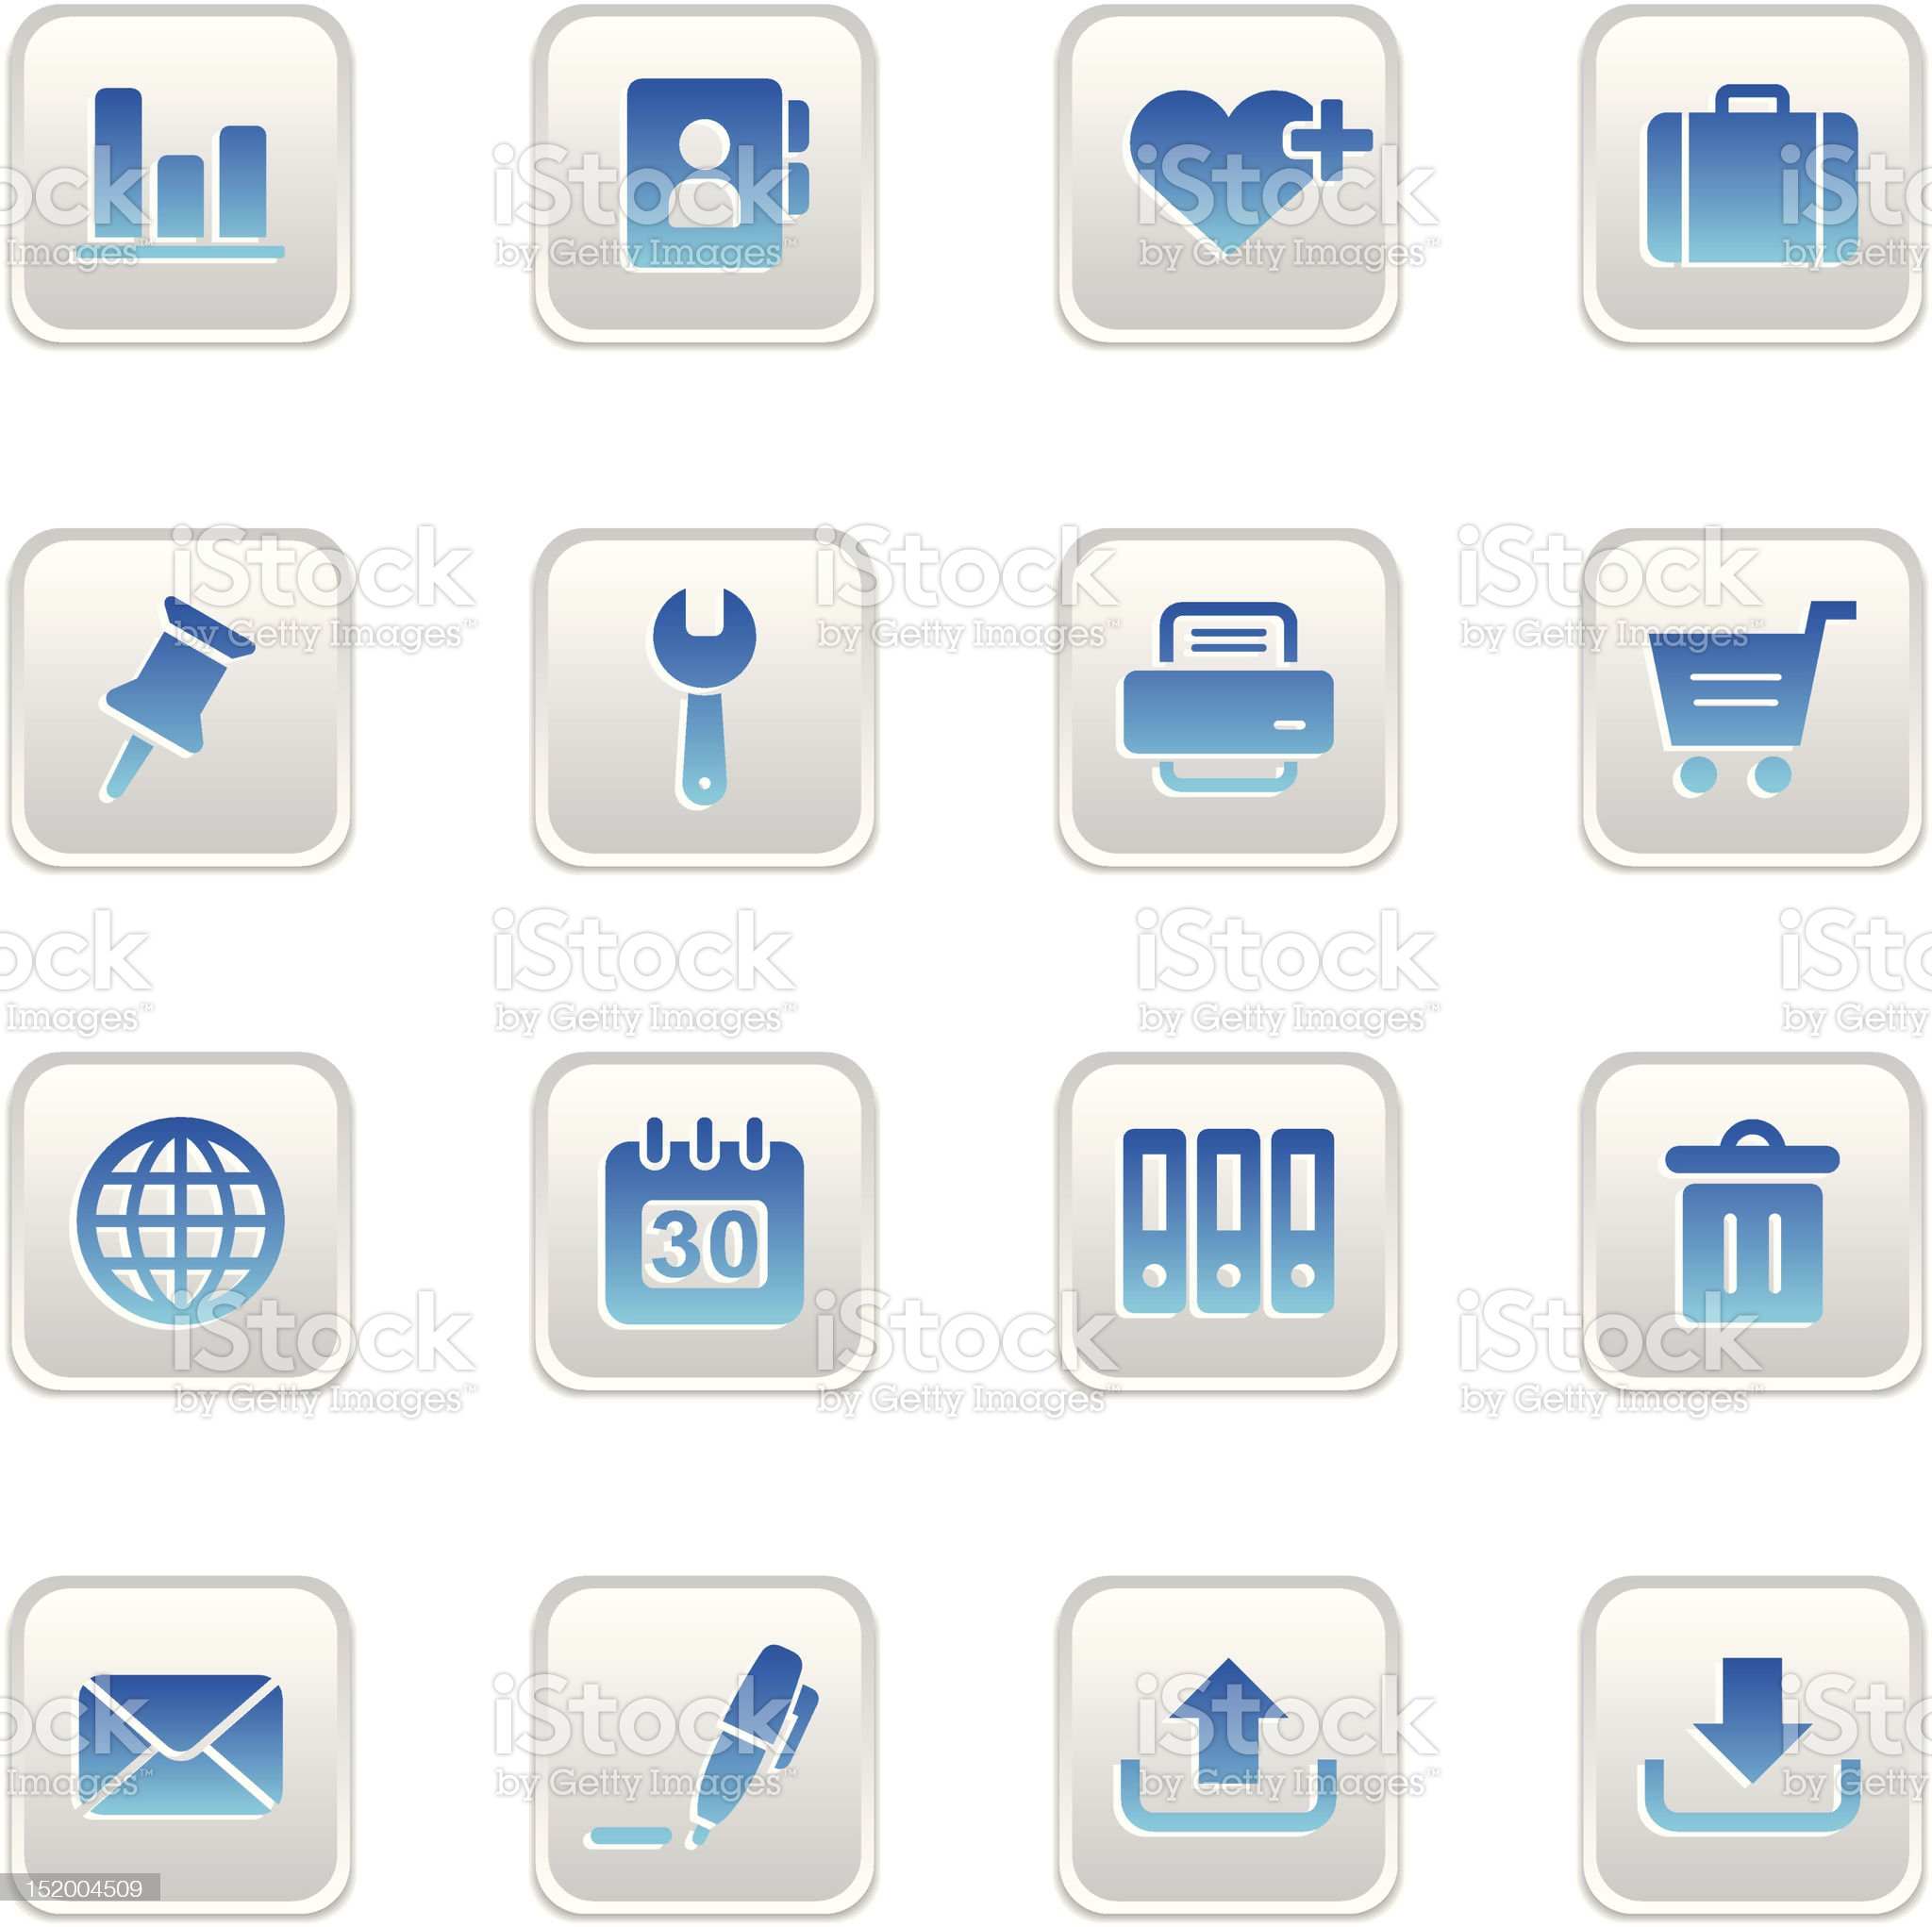 Web Icons Button Set royalty-free stock vector art